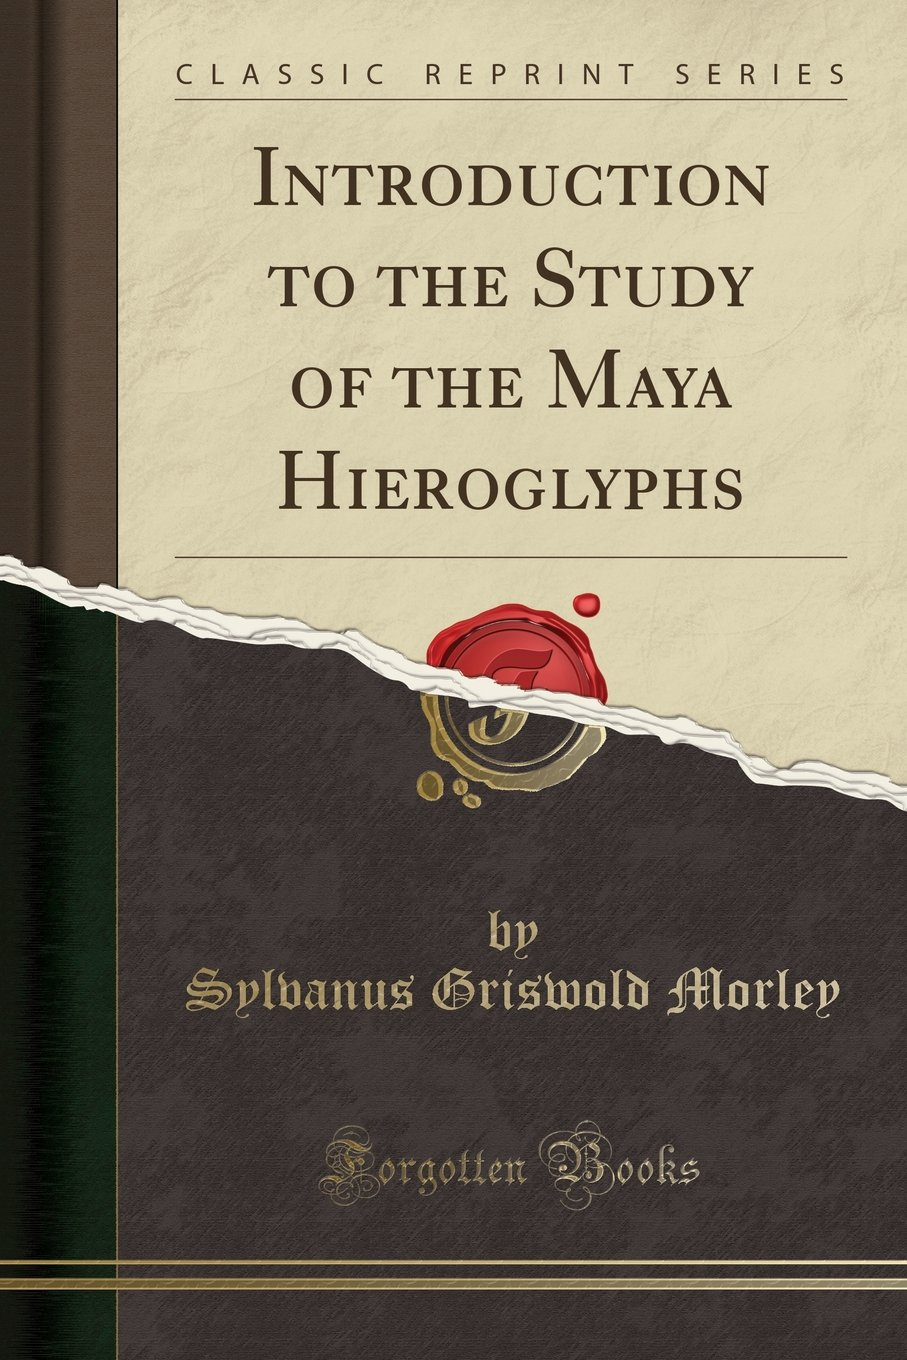 Introduction to the Study of the Maya Hieroglyphs (Classic Reprint) PDF